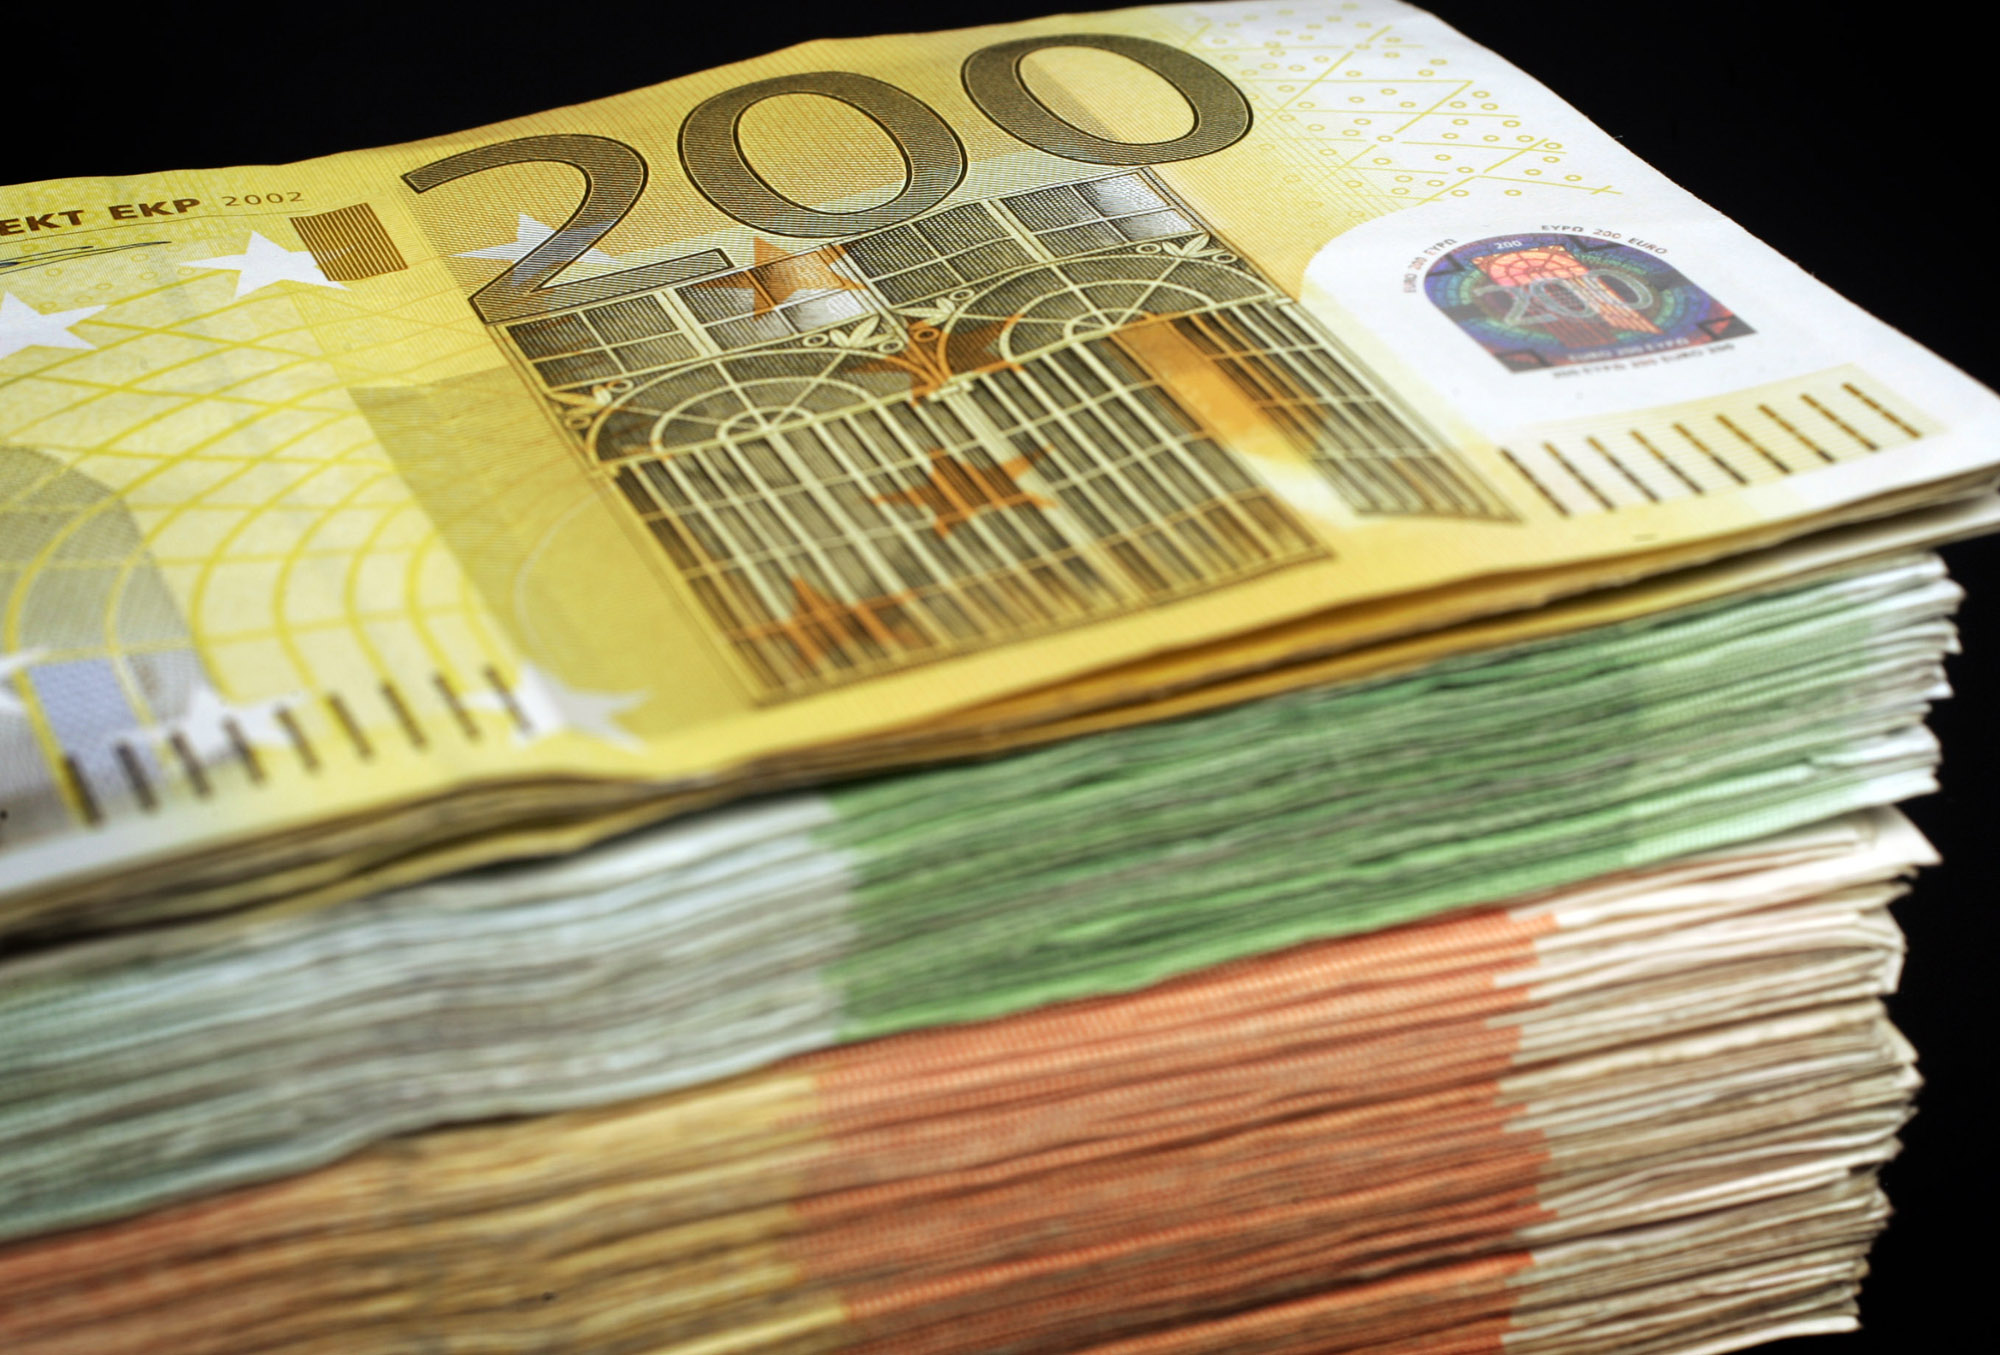 geld, money, bankbiljet, banknote, briefgeld, papiergeld, bills, stapels, zwartgeld, witwassen, flappen, sparen, savings, contant, cash